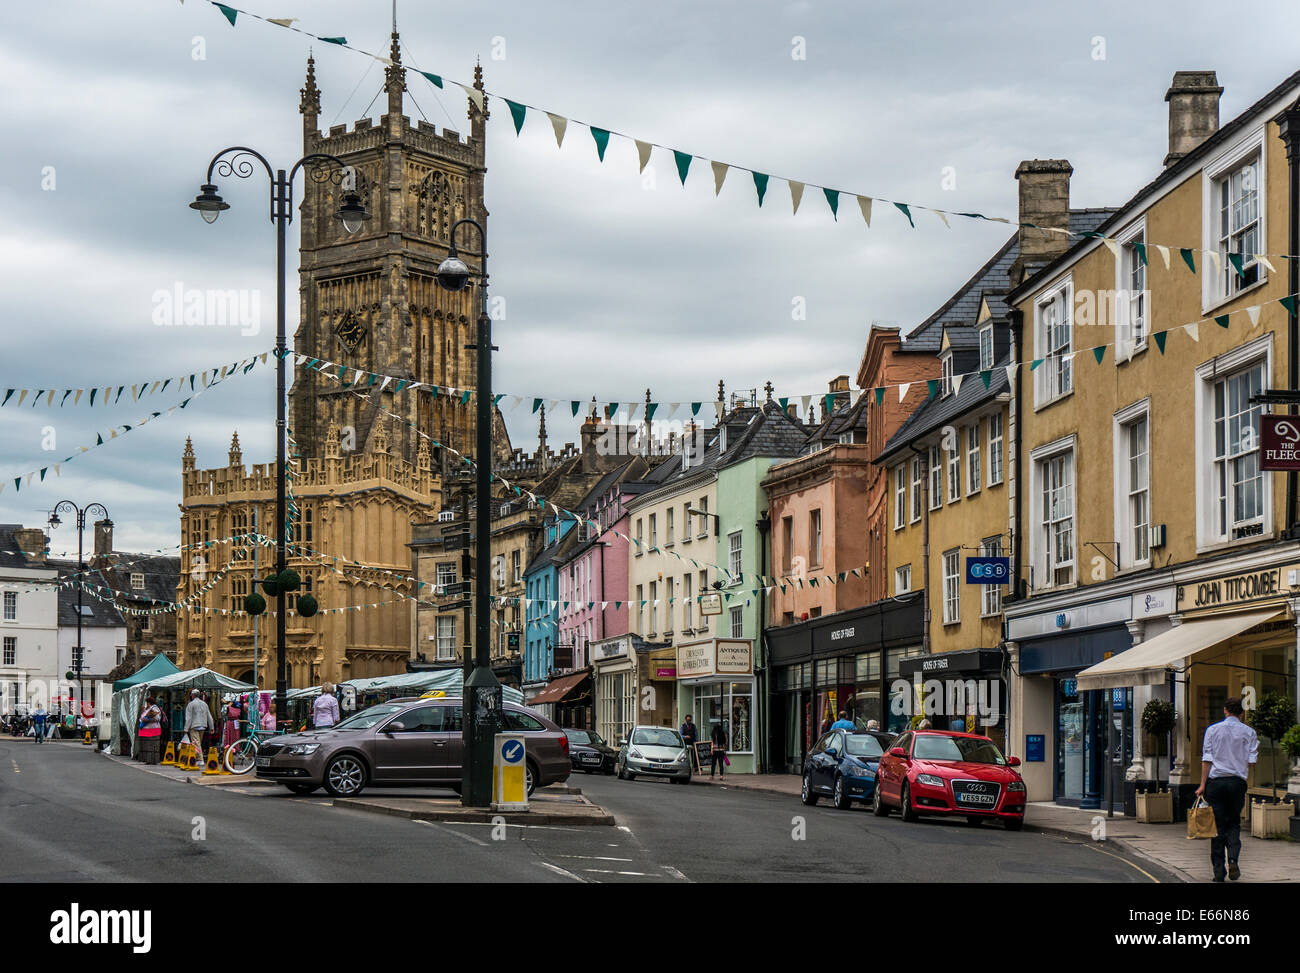 Town centre view, with church, period buildings, independent local shops and market stalls, Cirencester, Cotswolds, - Stock Image